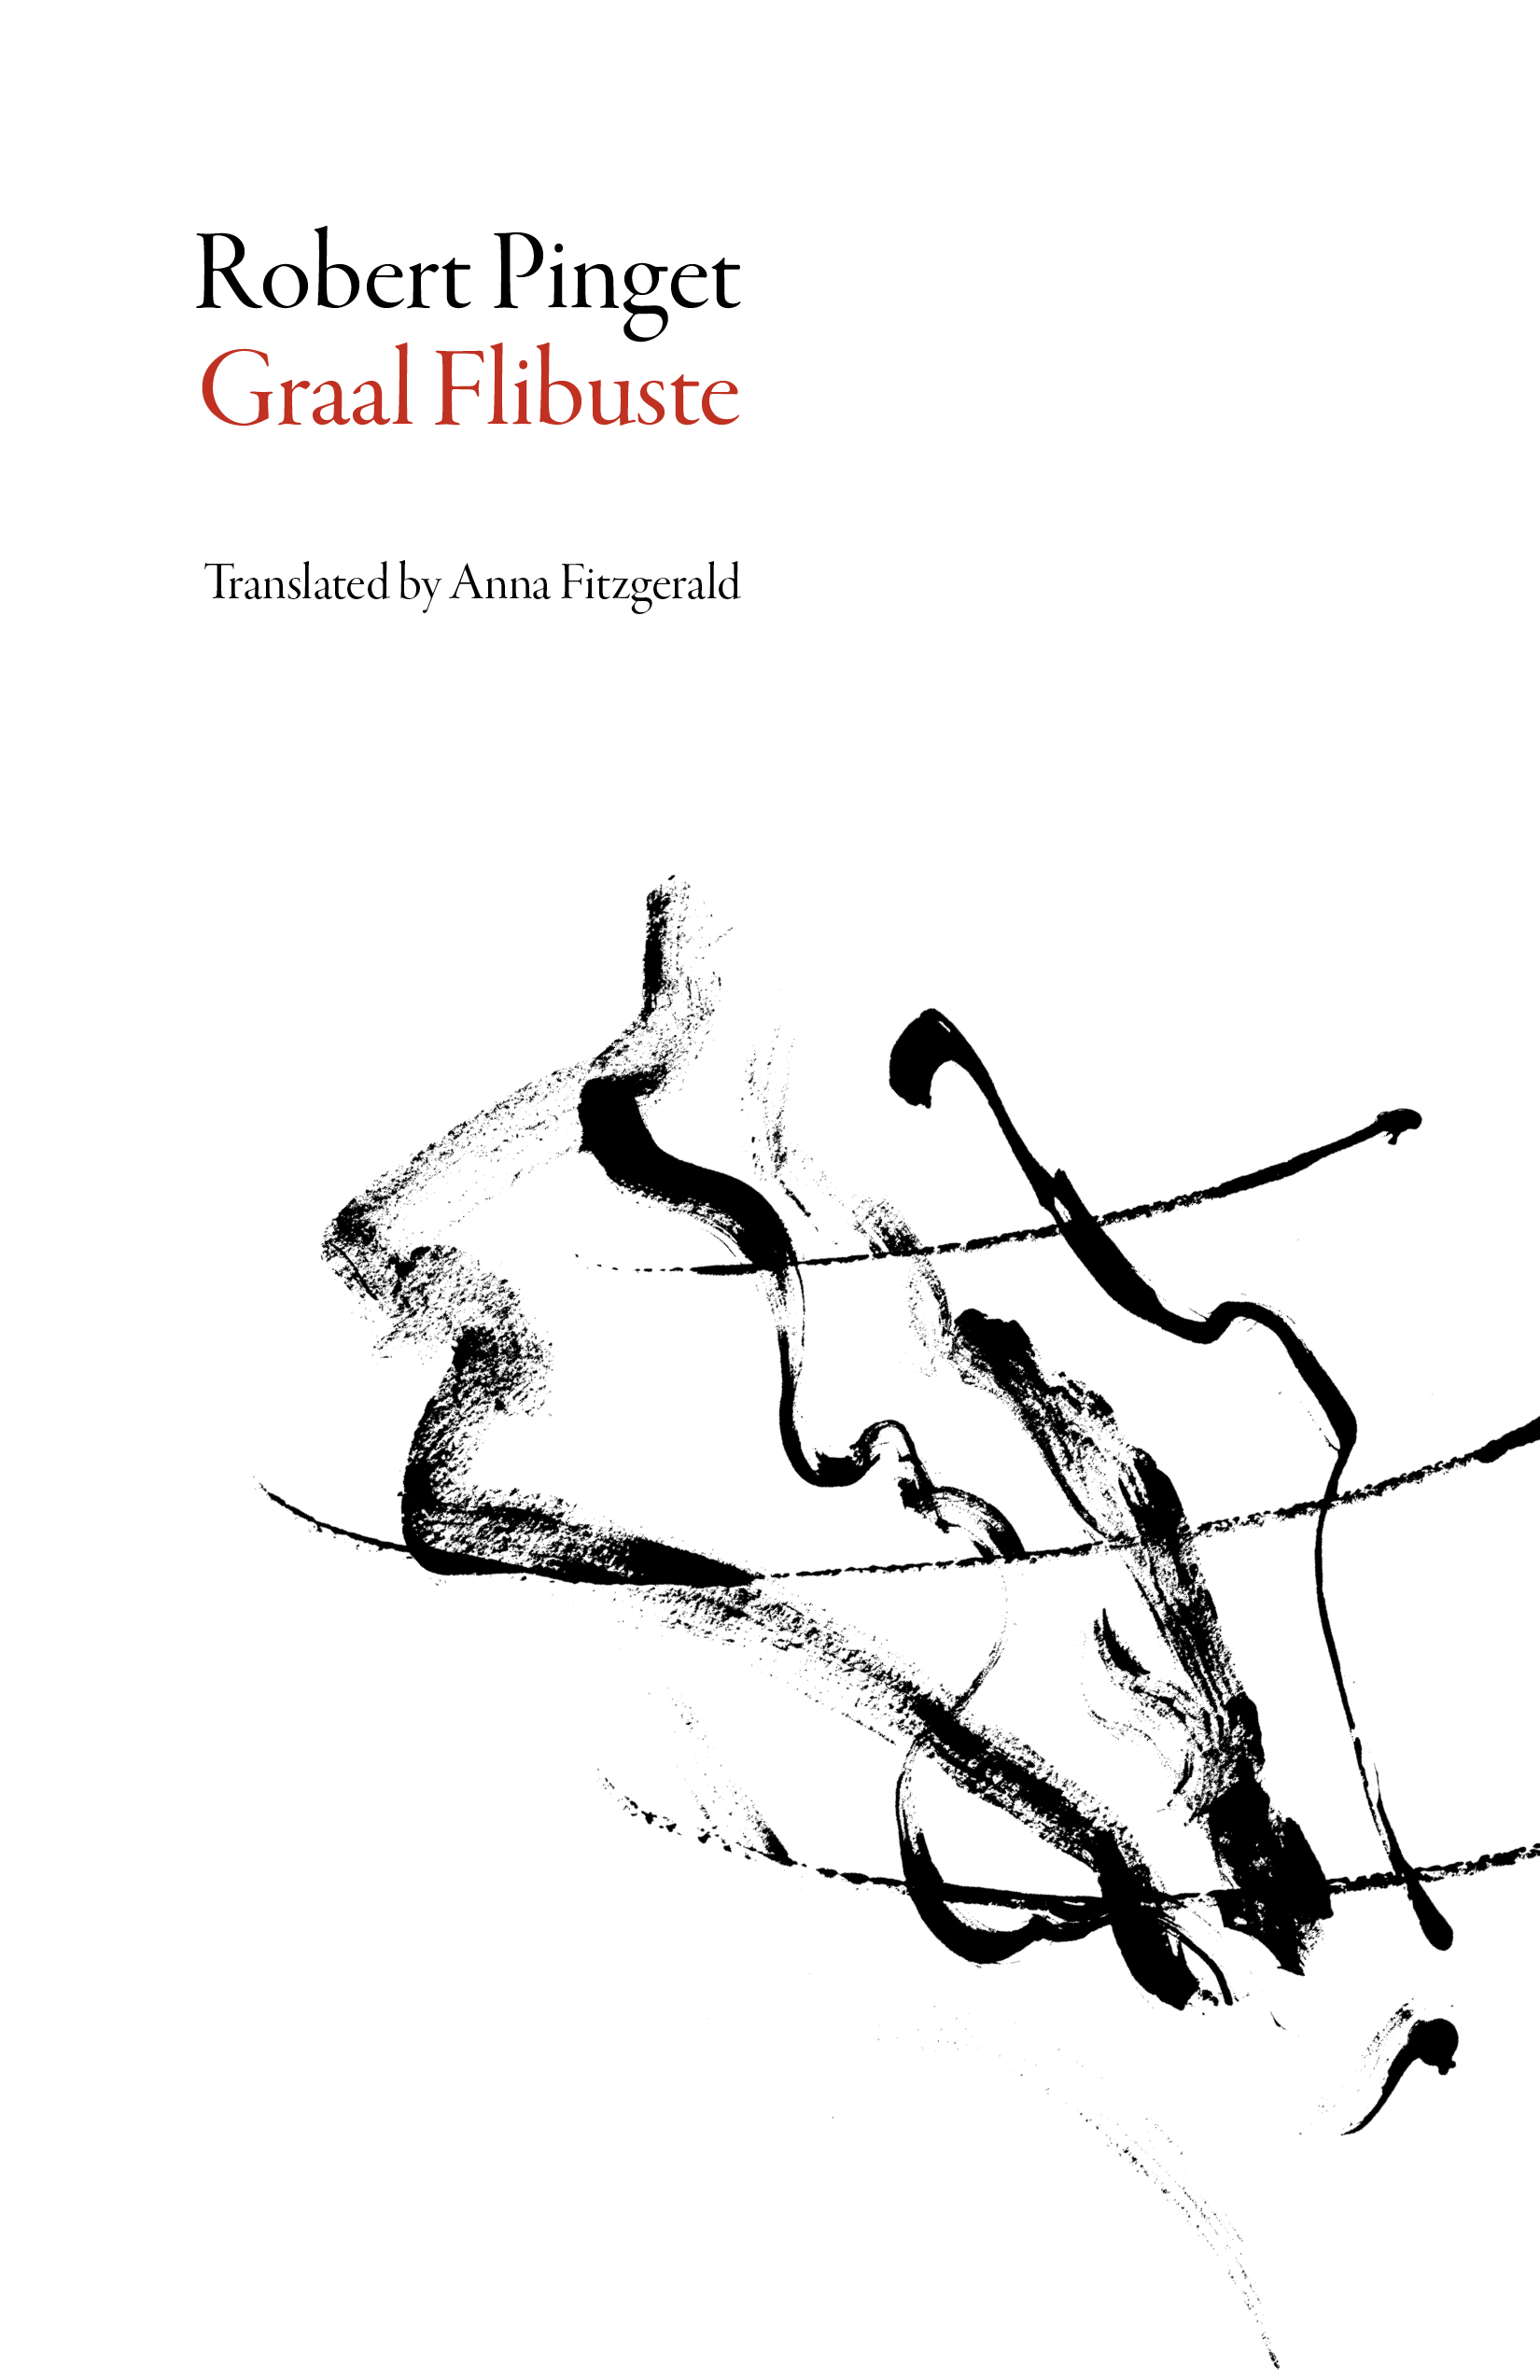 Raymond Roussel | Search Results | Dalkey Archive Press